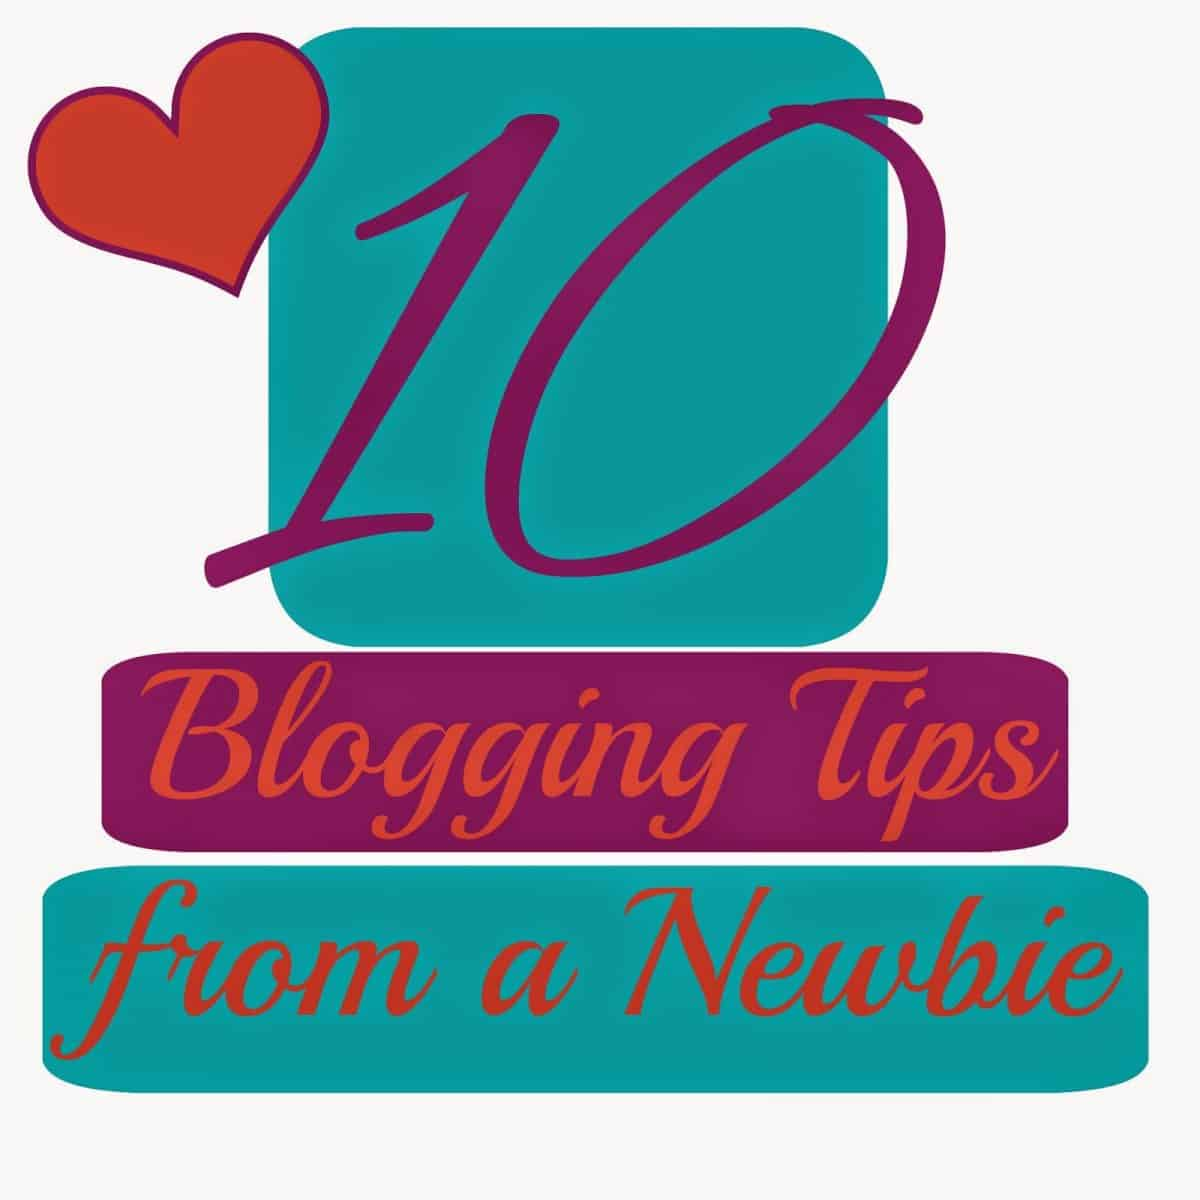 10 Blogging Tips From Us Newbies